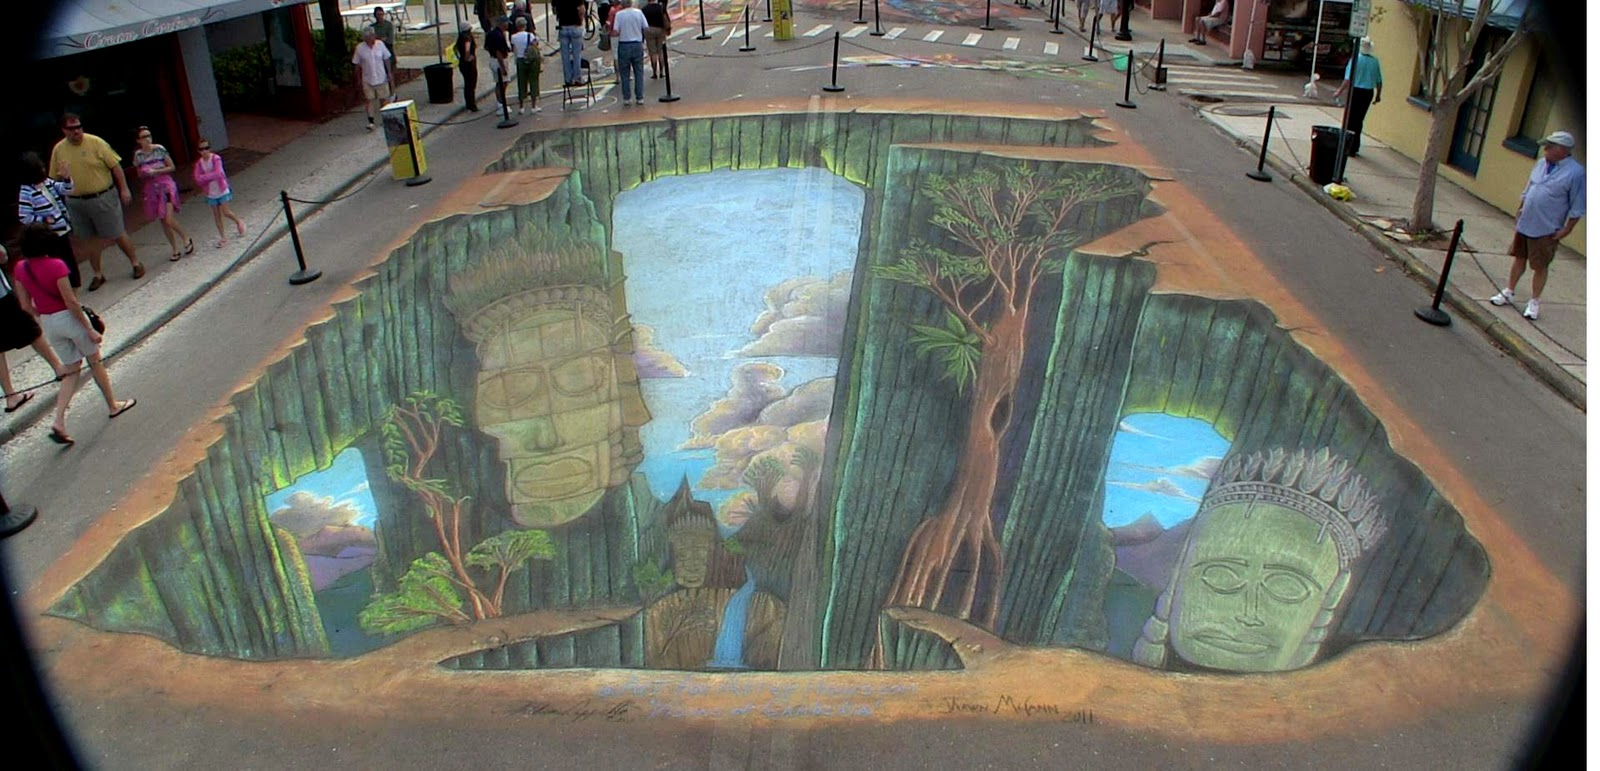 Shawn mccann street painting 3d wall murals regulare for 3d wall mural painting